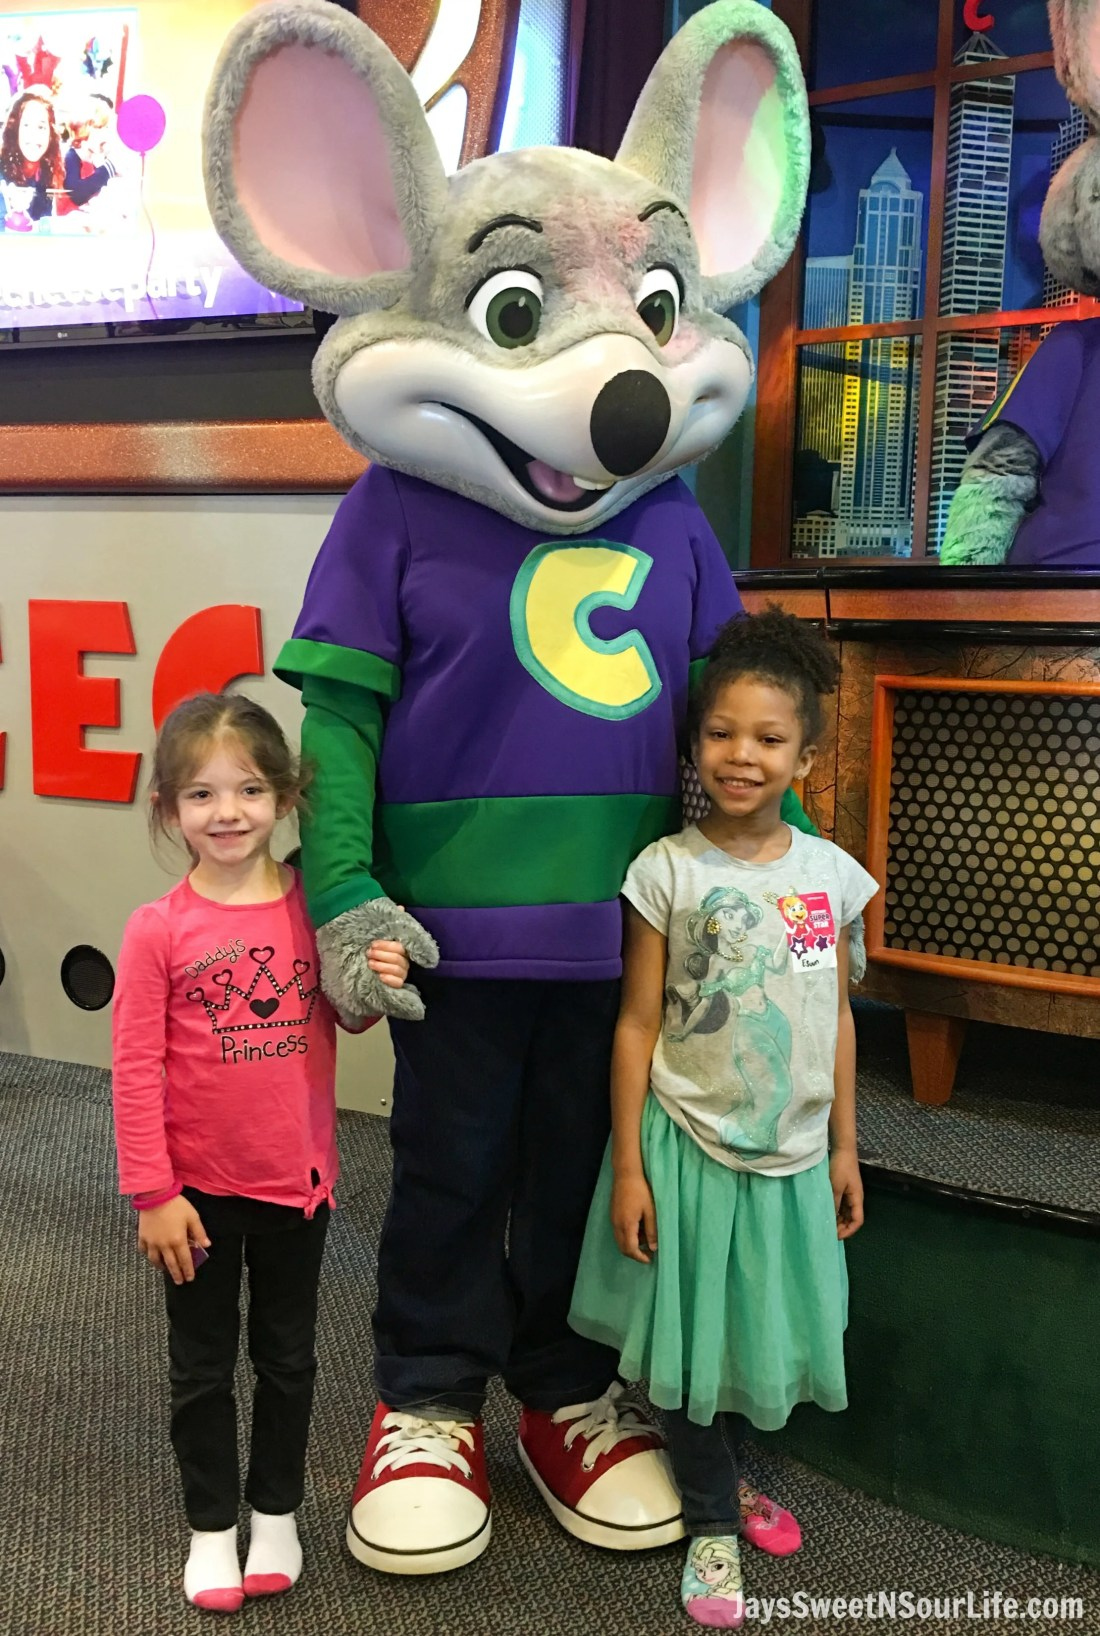 Chuck e cheeses VIP birthday party little girls with Chuck E. Character. Book your party today and have guests enjoy 2 hours of unlimited game play.